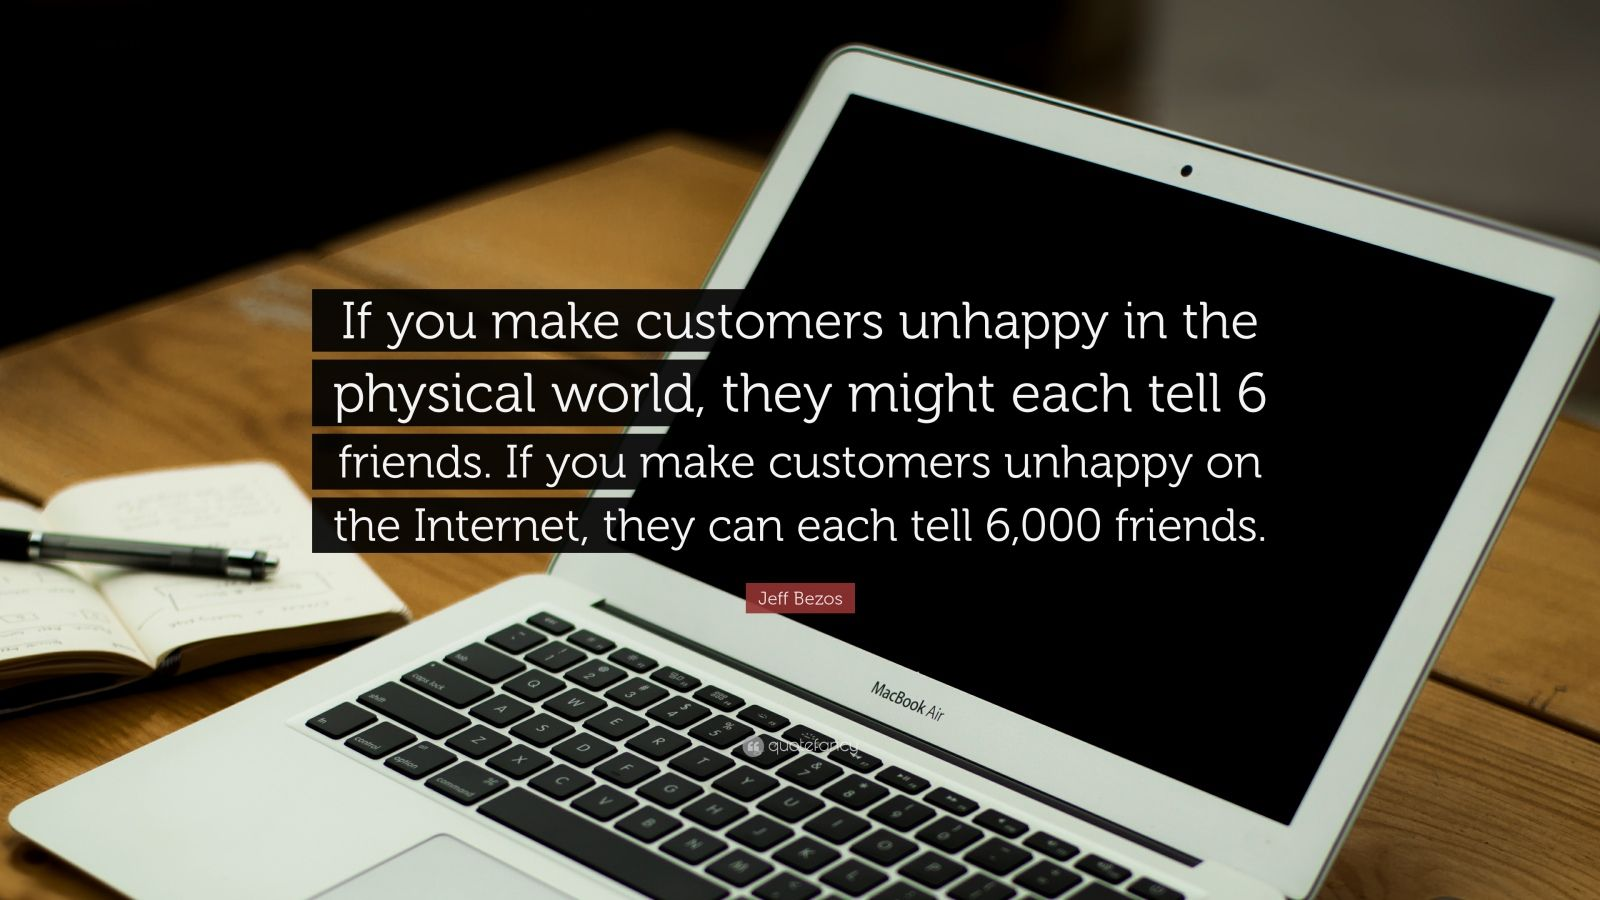 """Jeff Bezos Quote: """"If you make customers unhappy in the physical world, they might each tell 6 friends. If you make customers unhappy on the Internet, they can each tell 6,000 friends."""""""